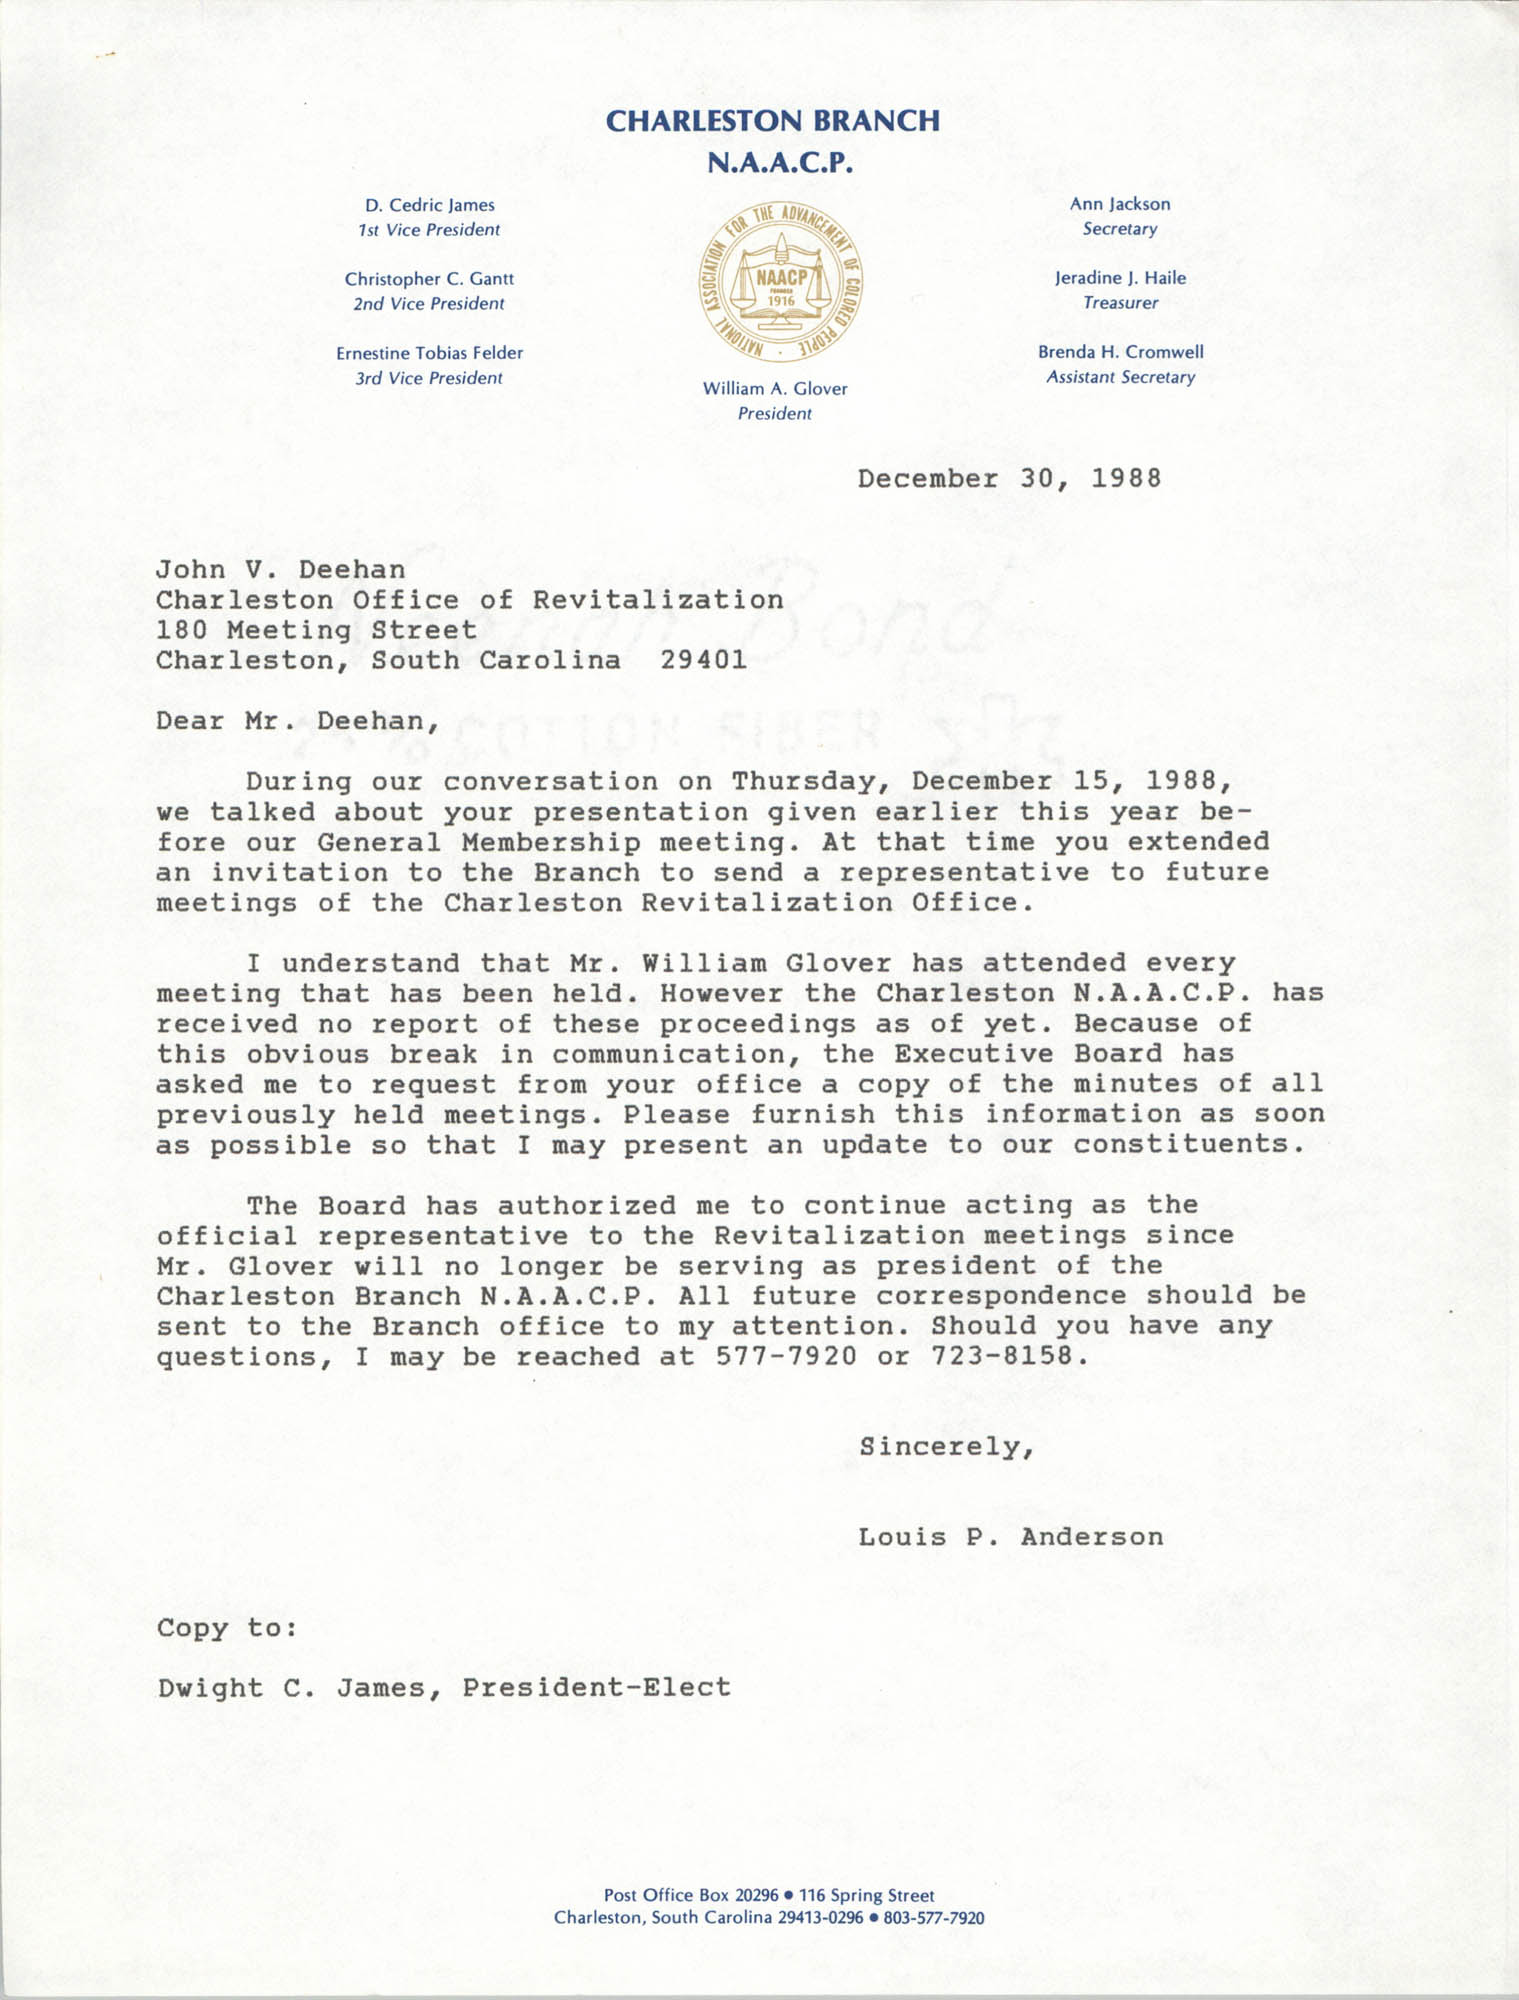 Letter from Louis P. Anderson to John V. Deehan, December 30, 1988